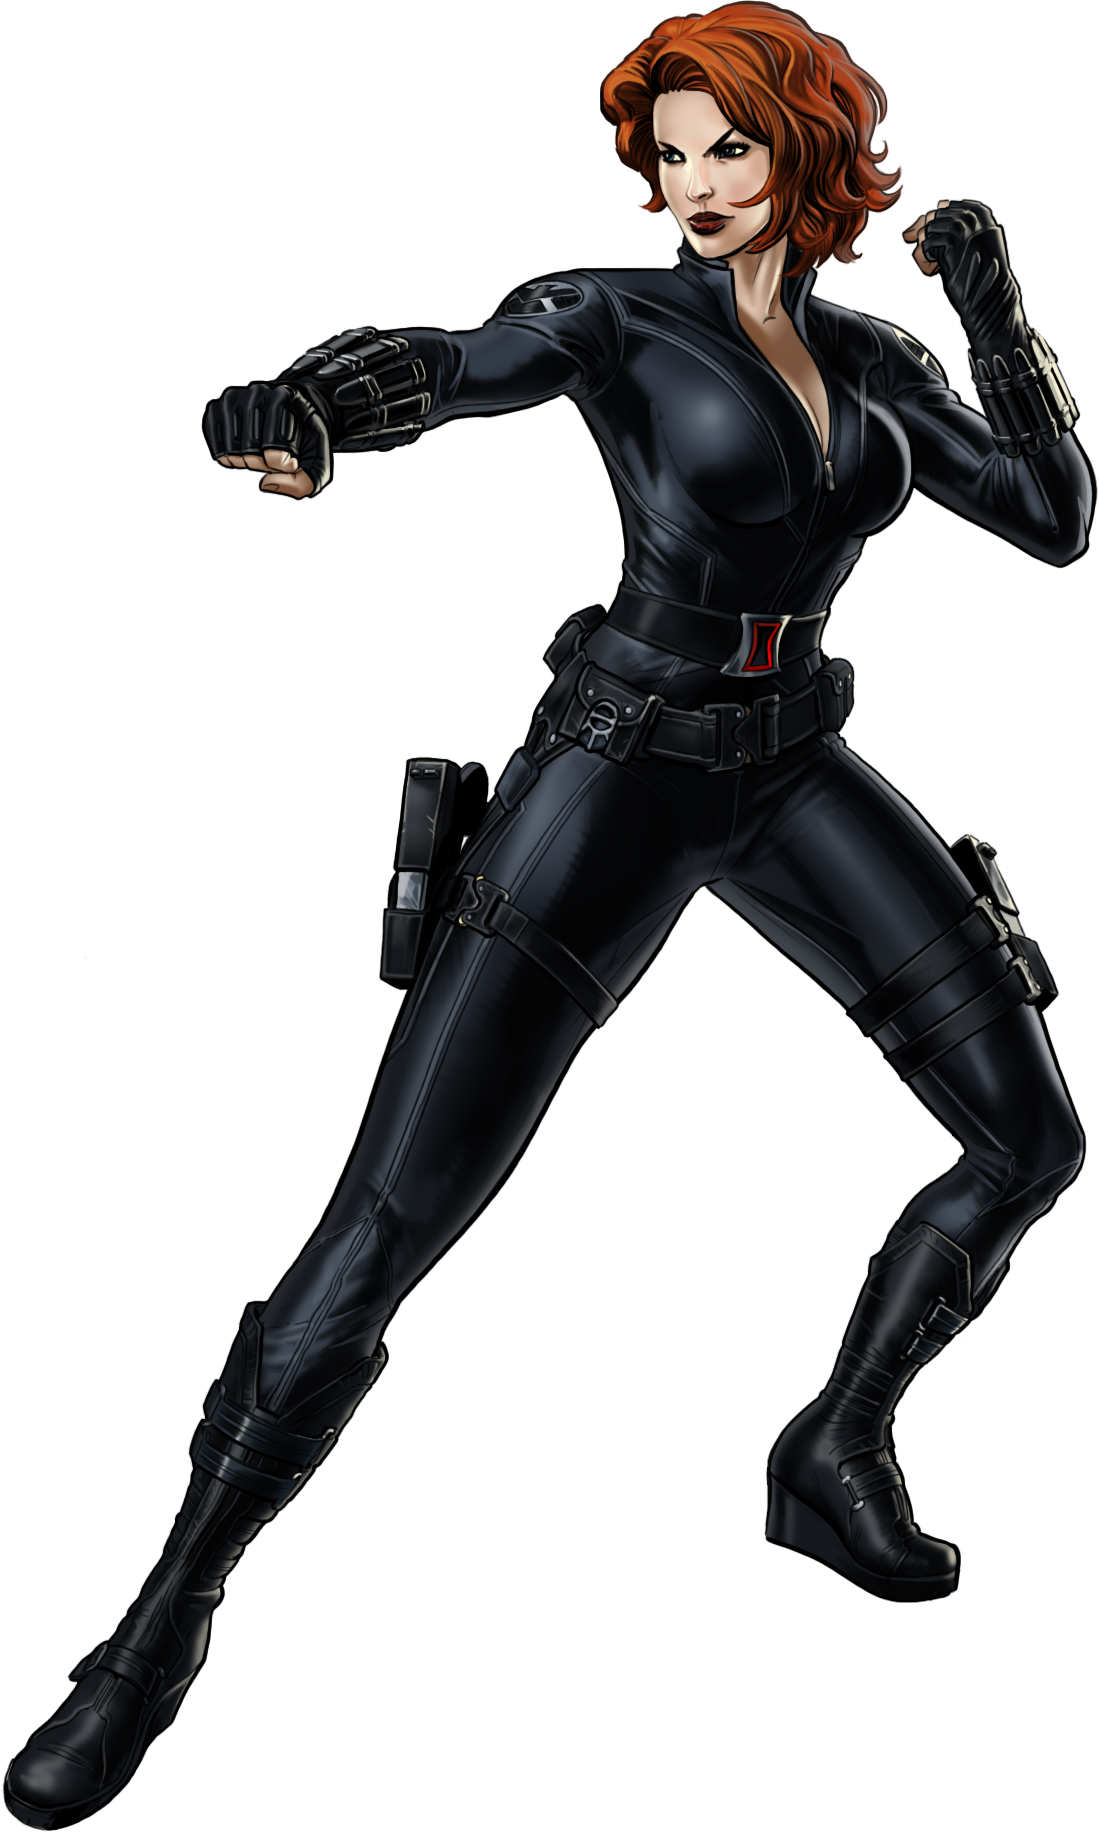 Black Widow PNG - 27822